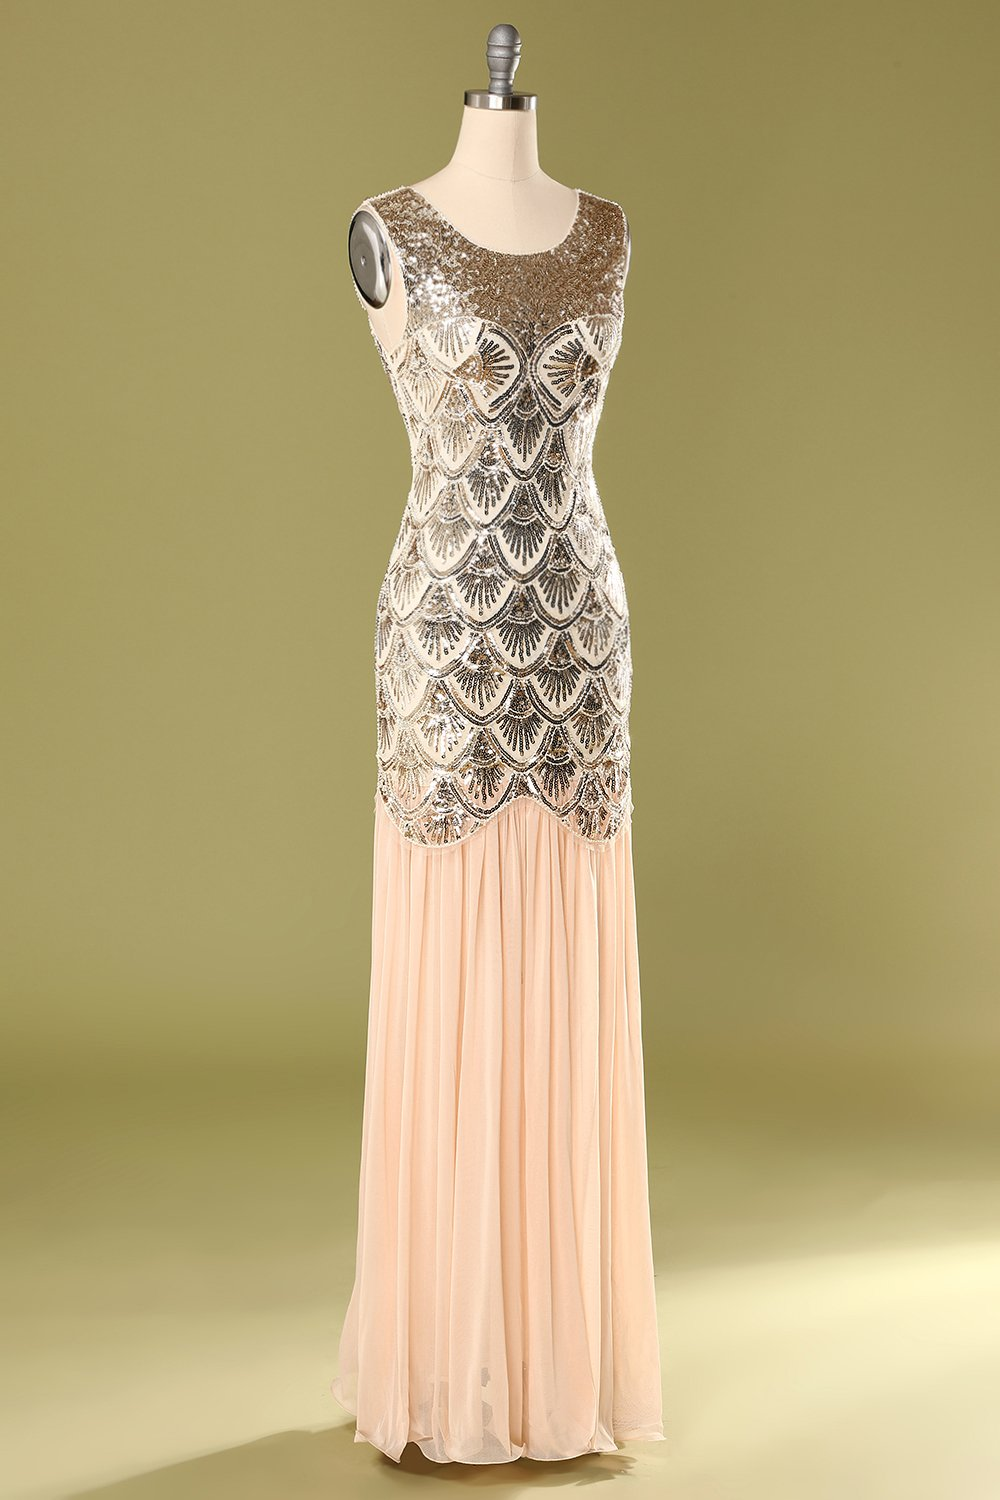 Pink Mermaid 1920s Flapper Dress